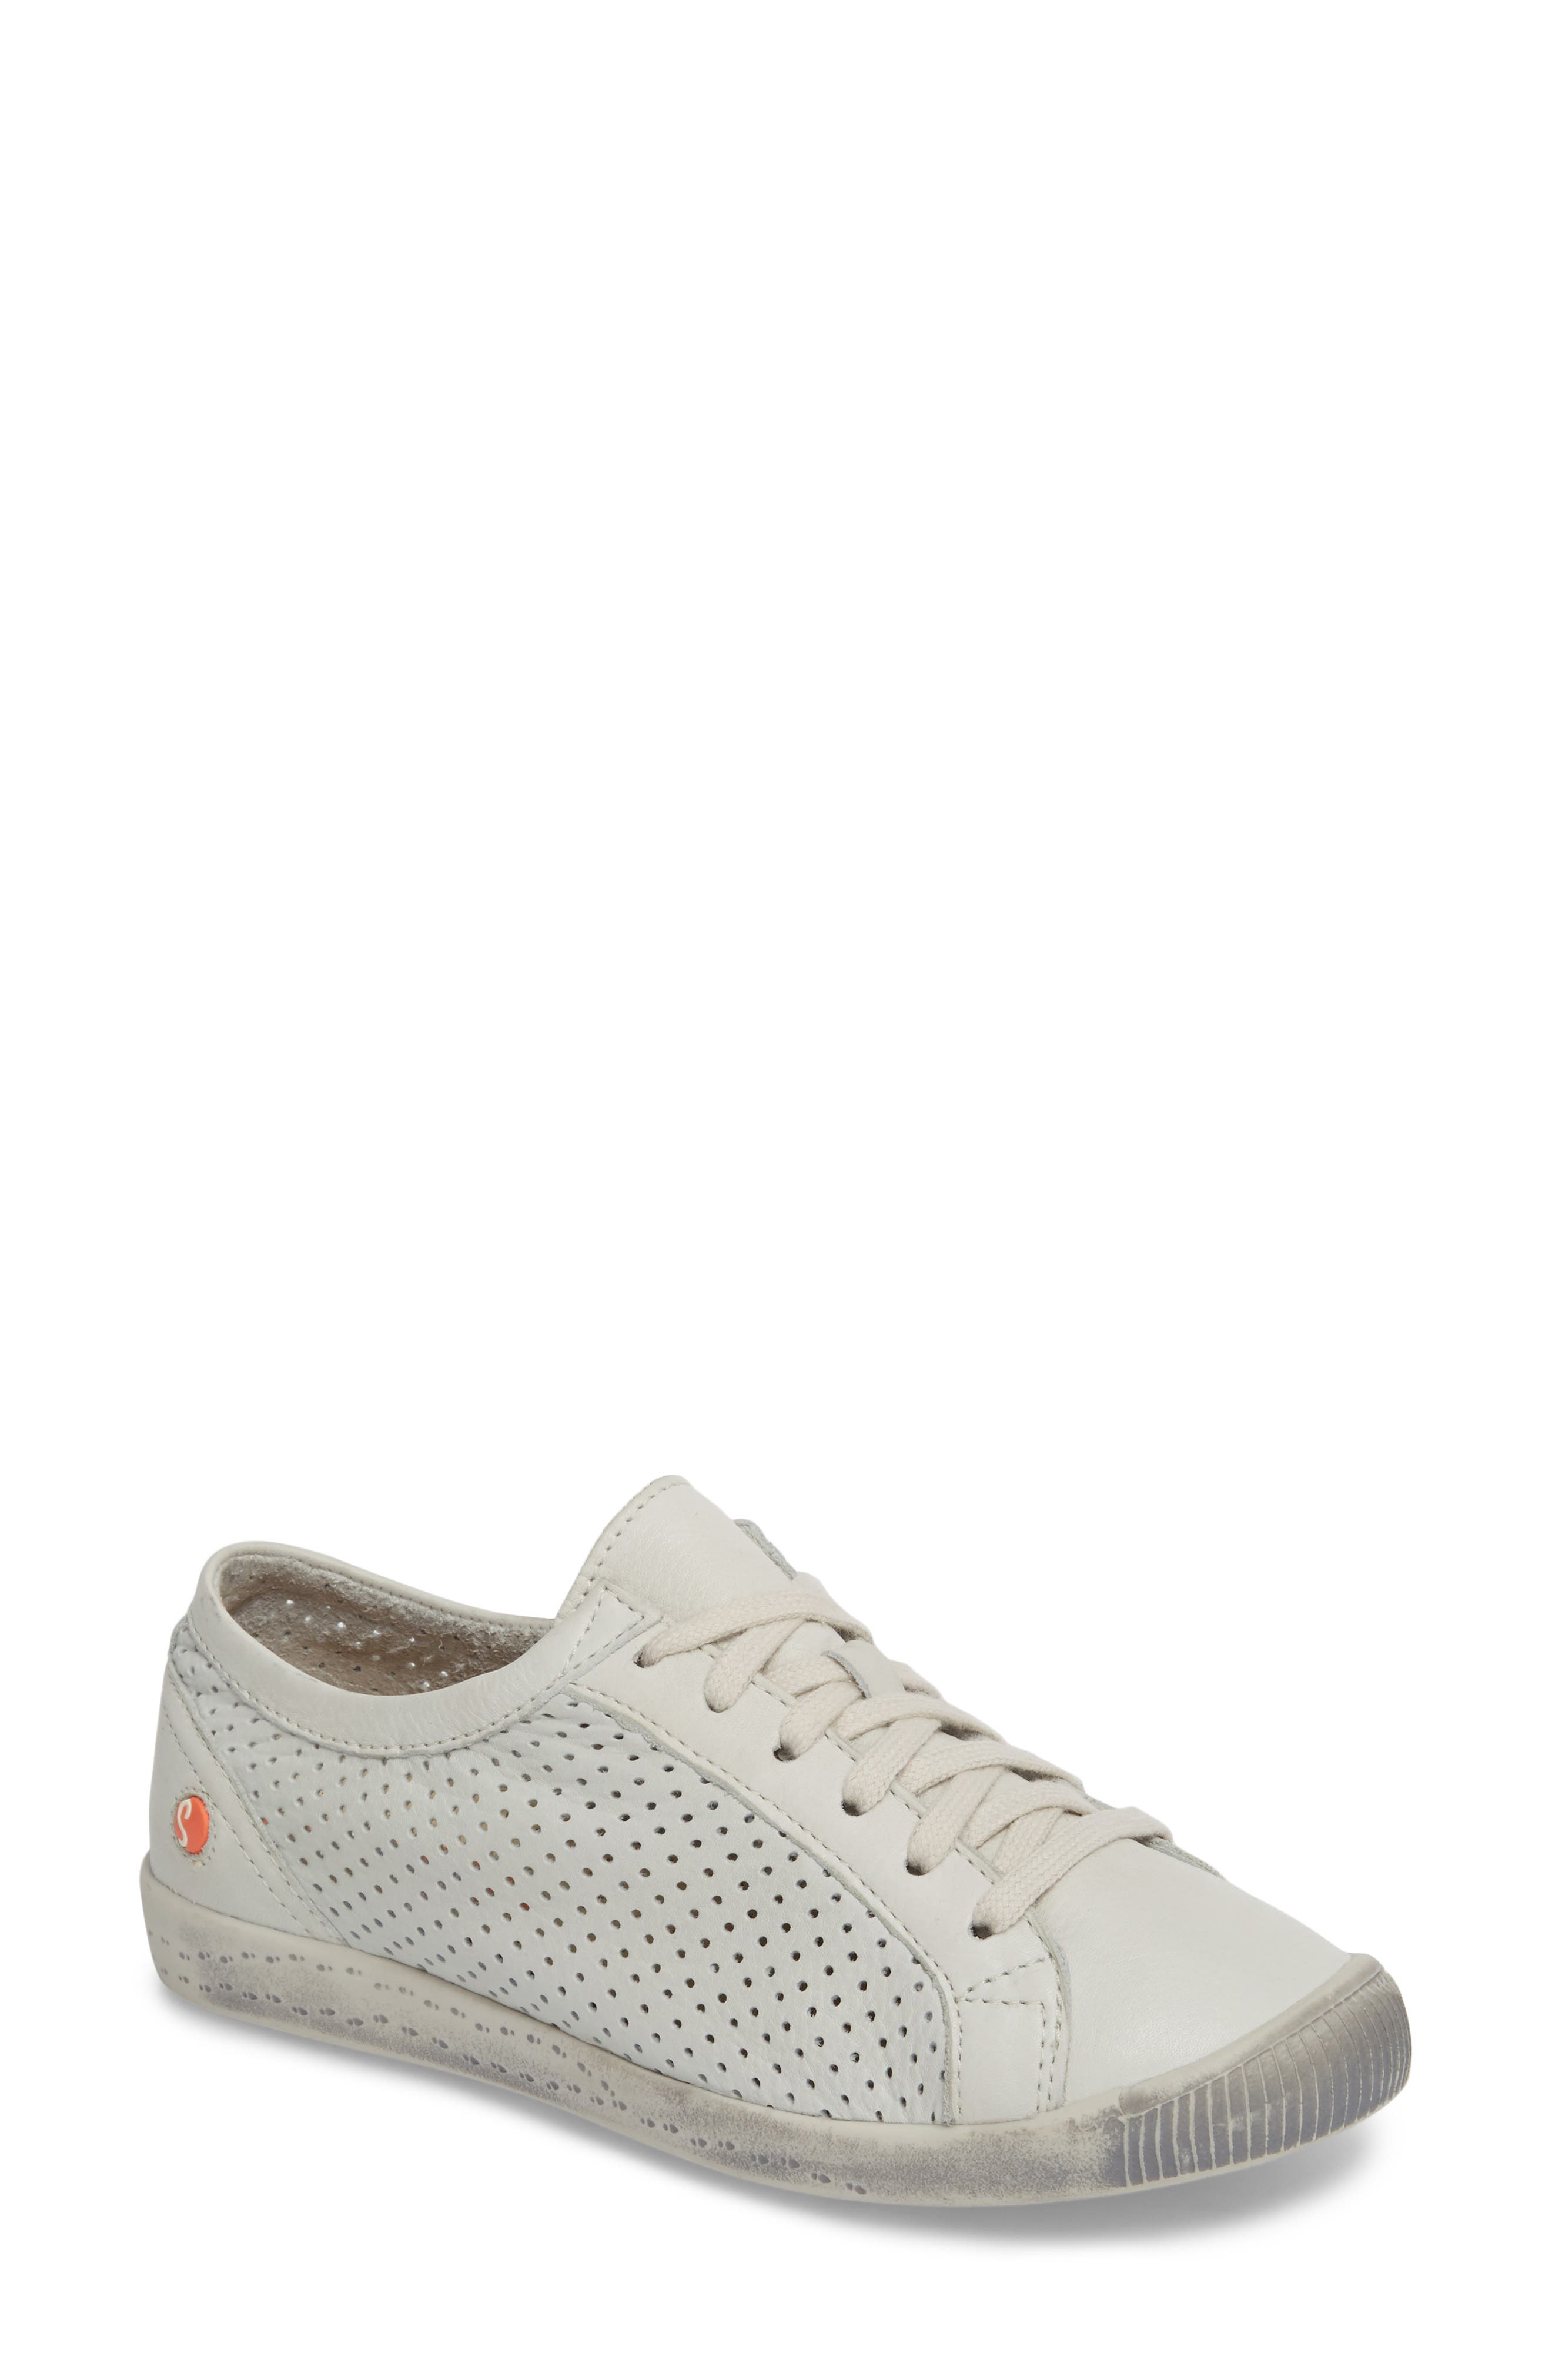 Ica Sneaker,                             Main thumbnail 1, color,                             WHITE LEATHER